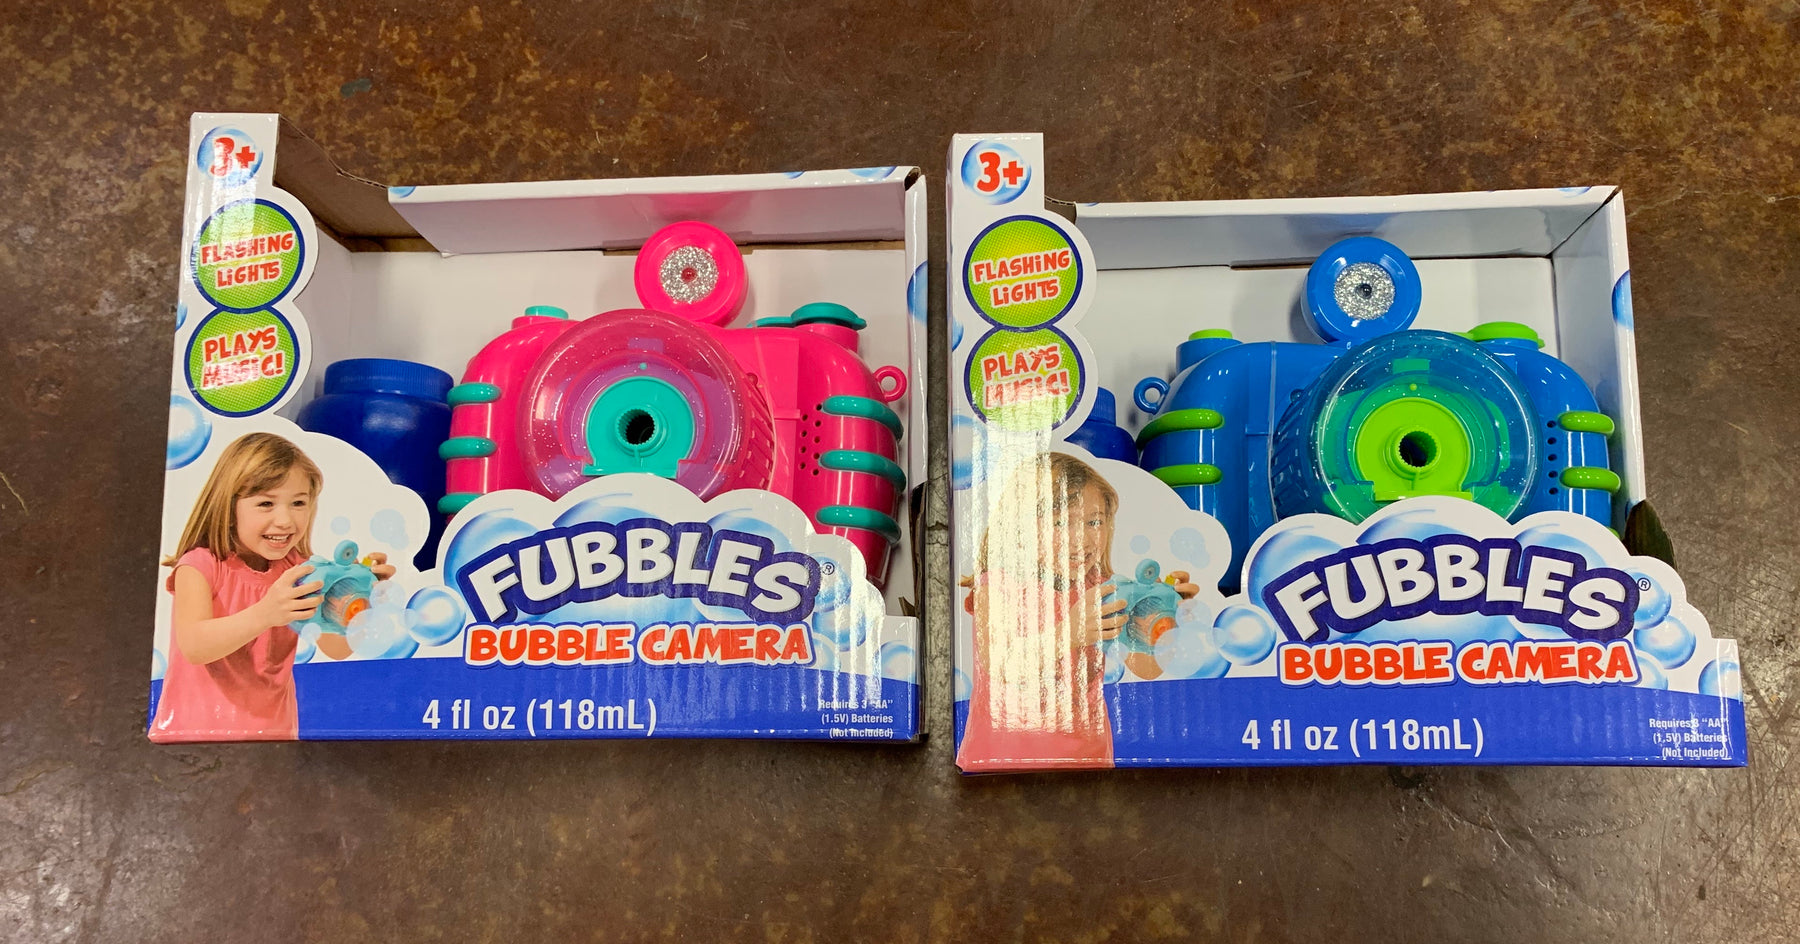 Fubbles!  Bubble Camera.